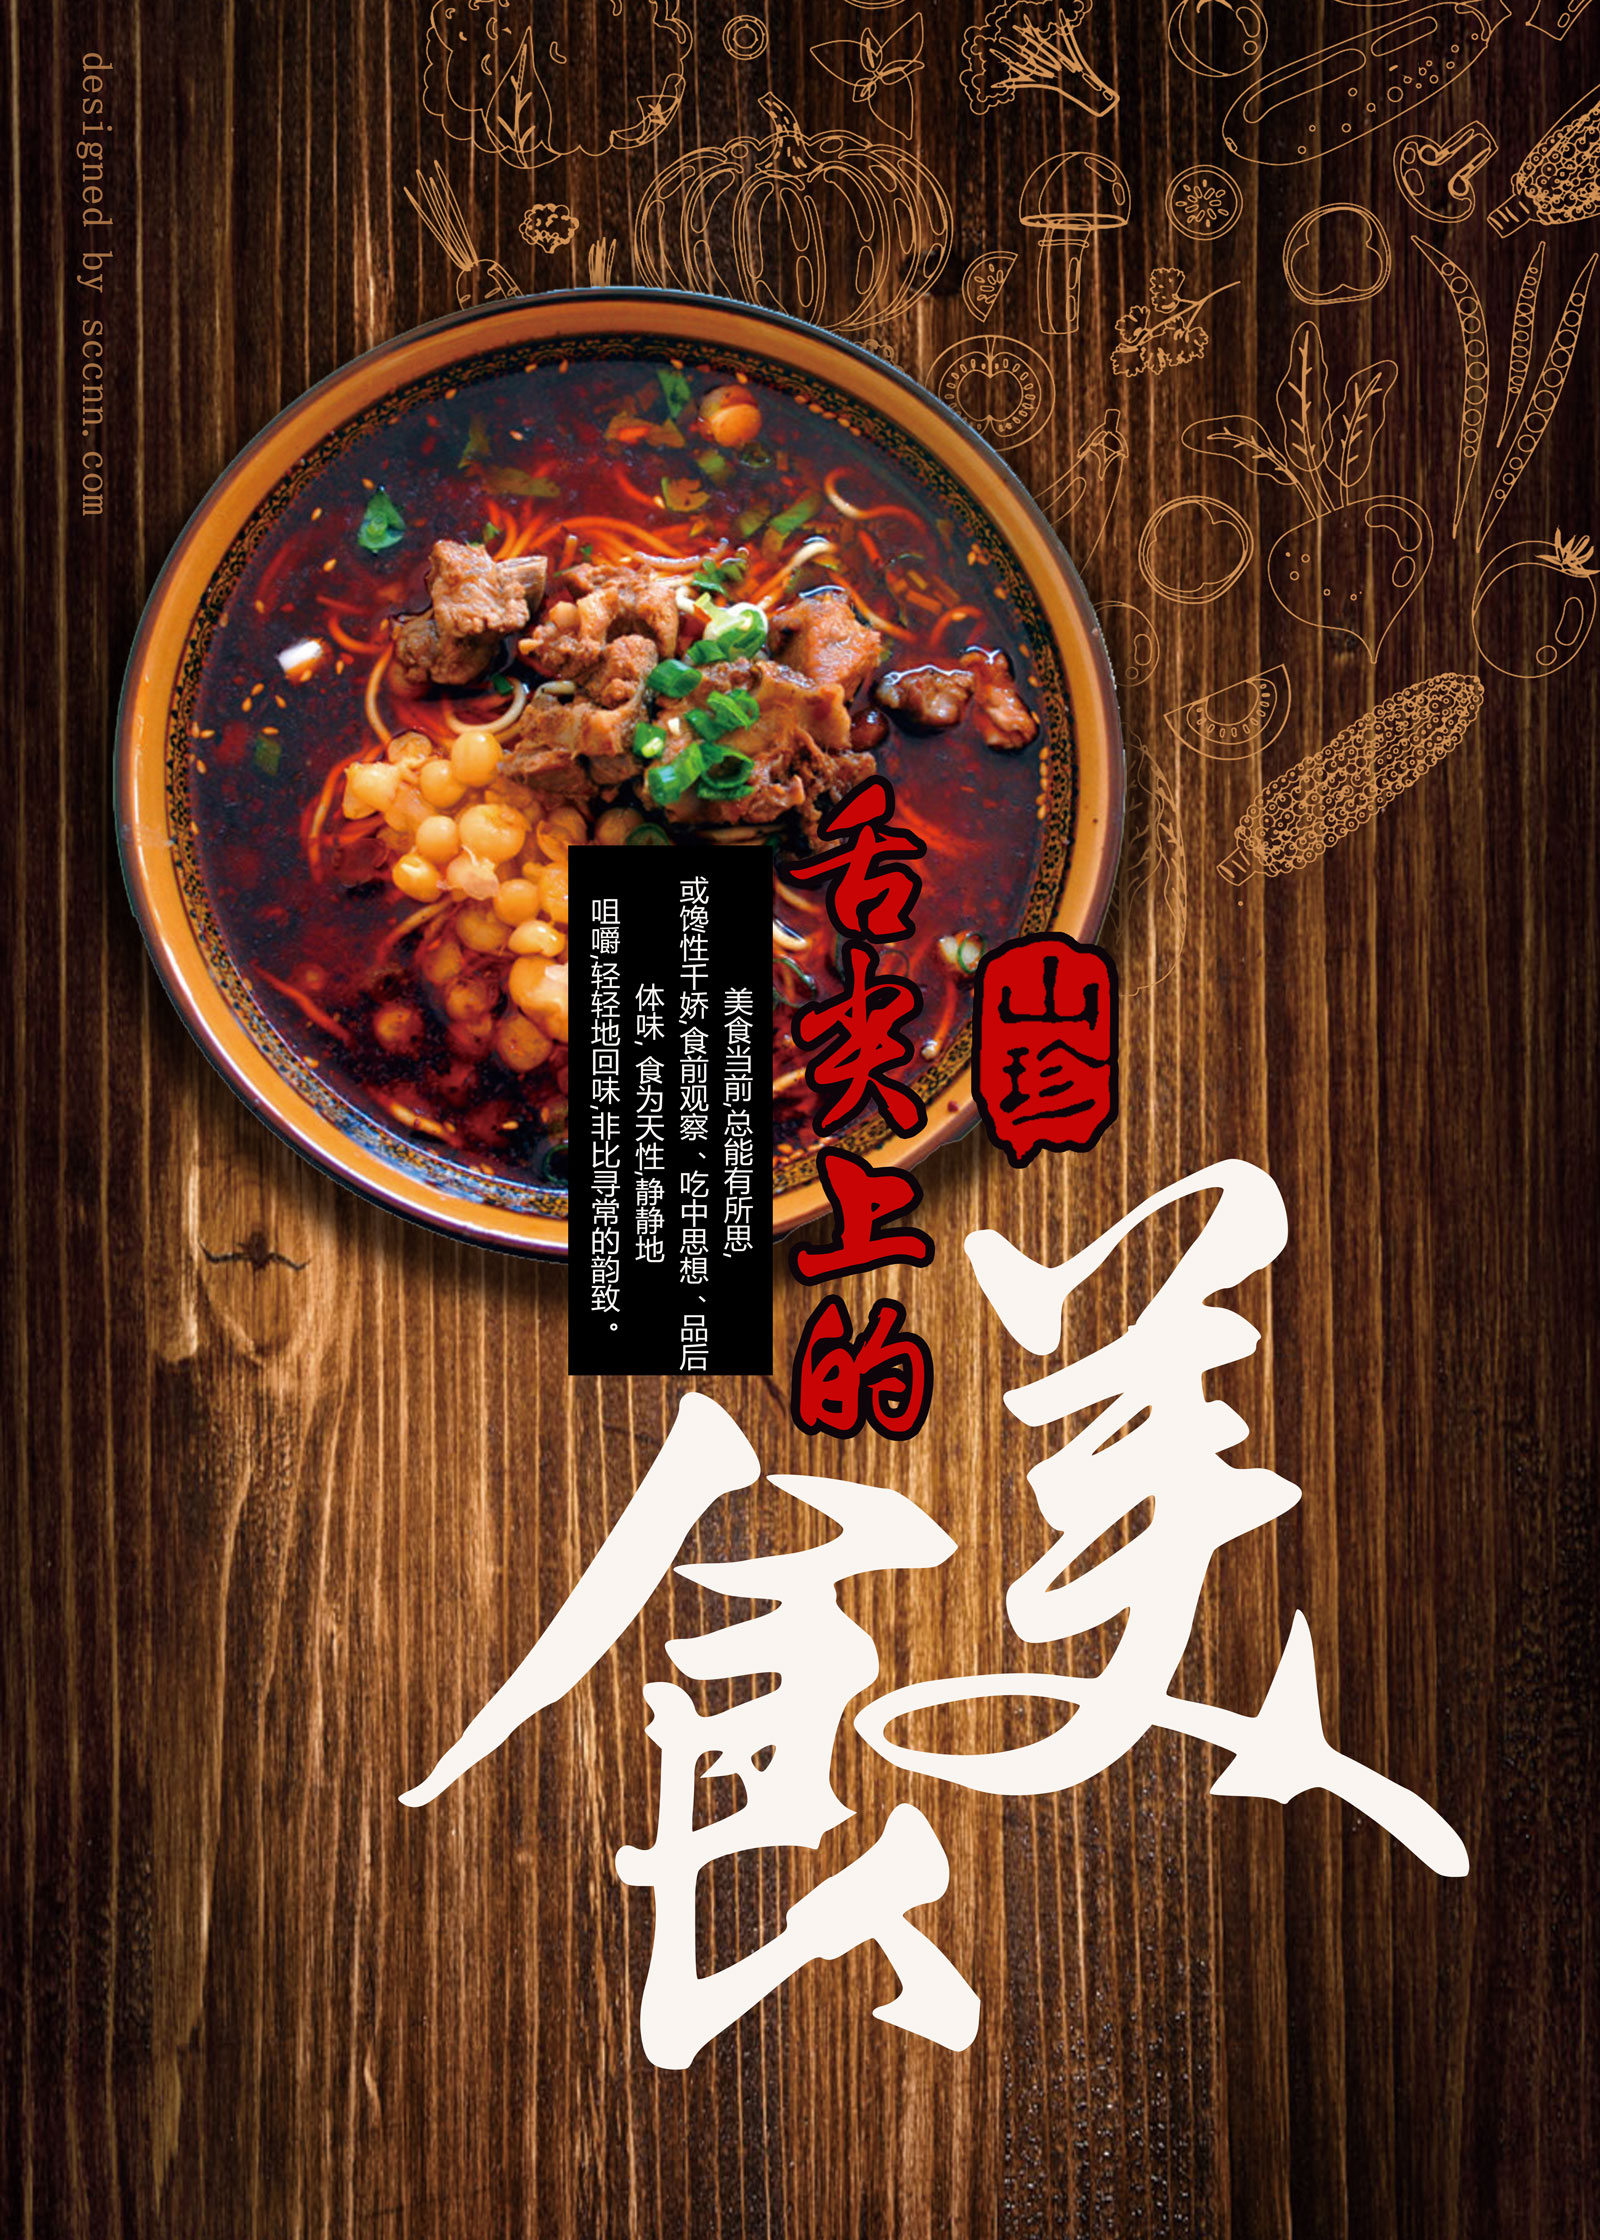 A Bite of China Restaurant posters PSD File Free Download